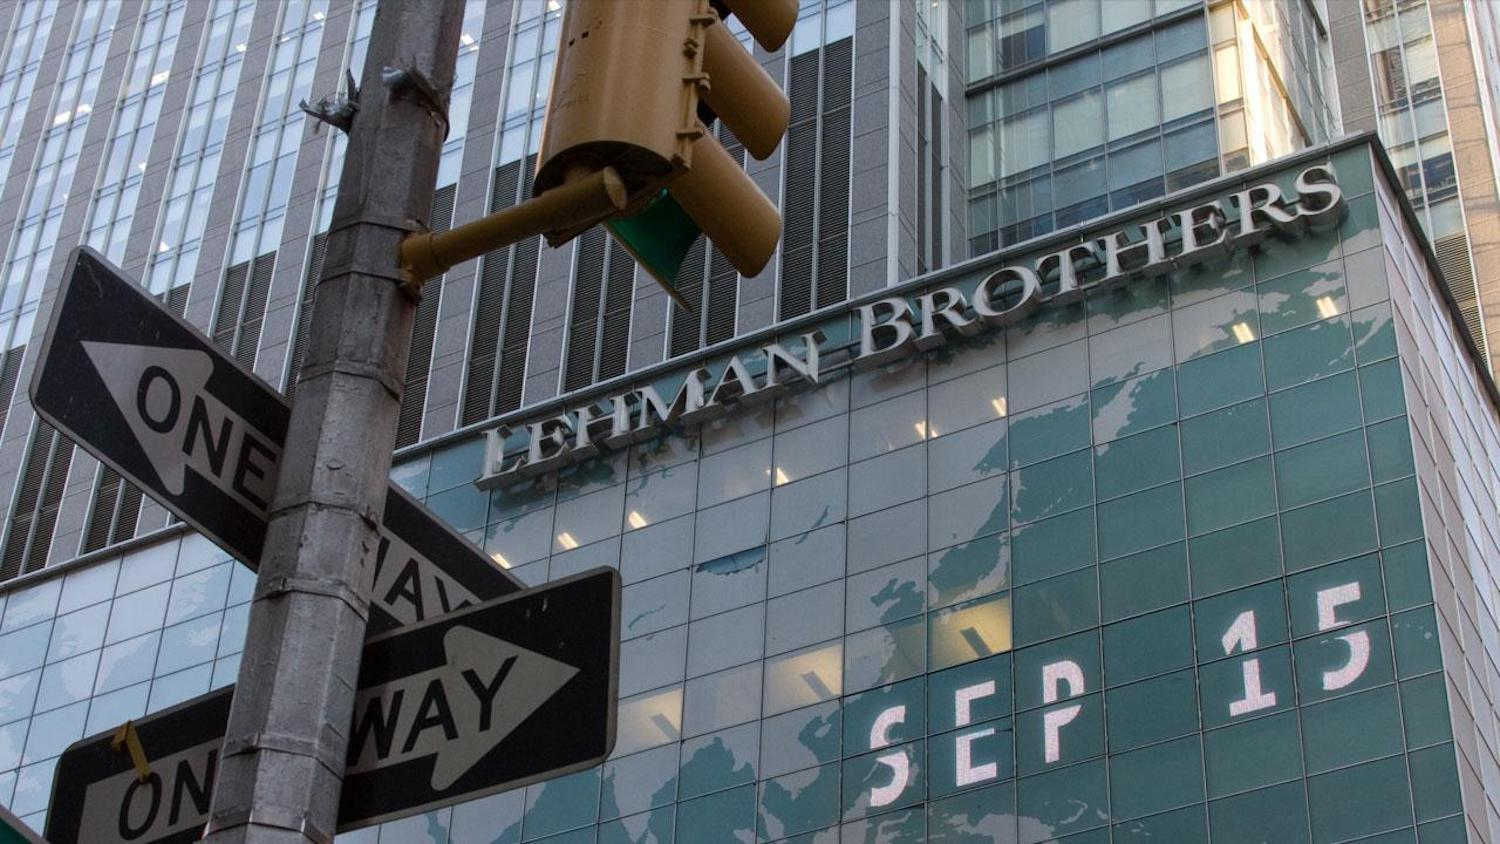 Former Bear Stearns CEO: Lessons from the financial crisis 10 years later